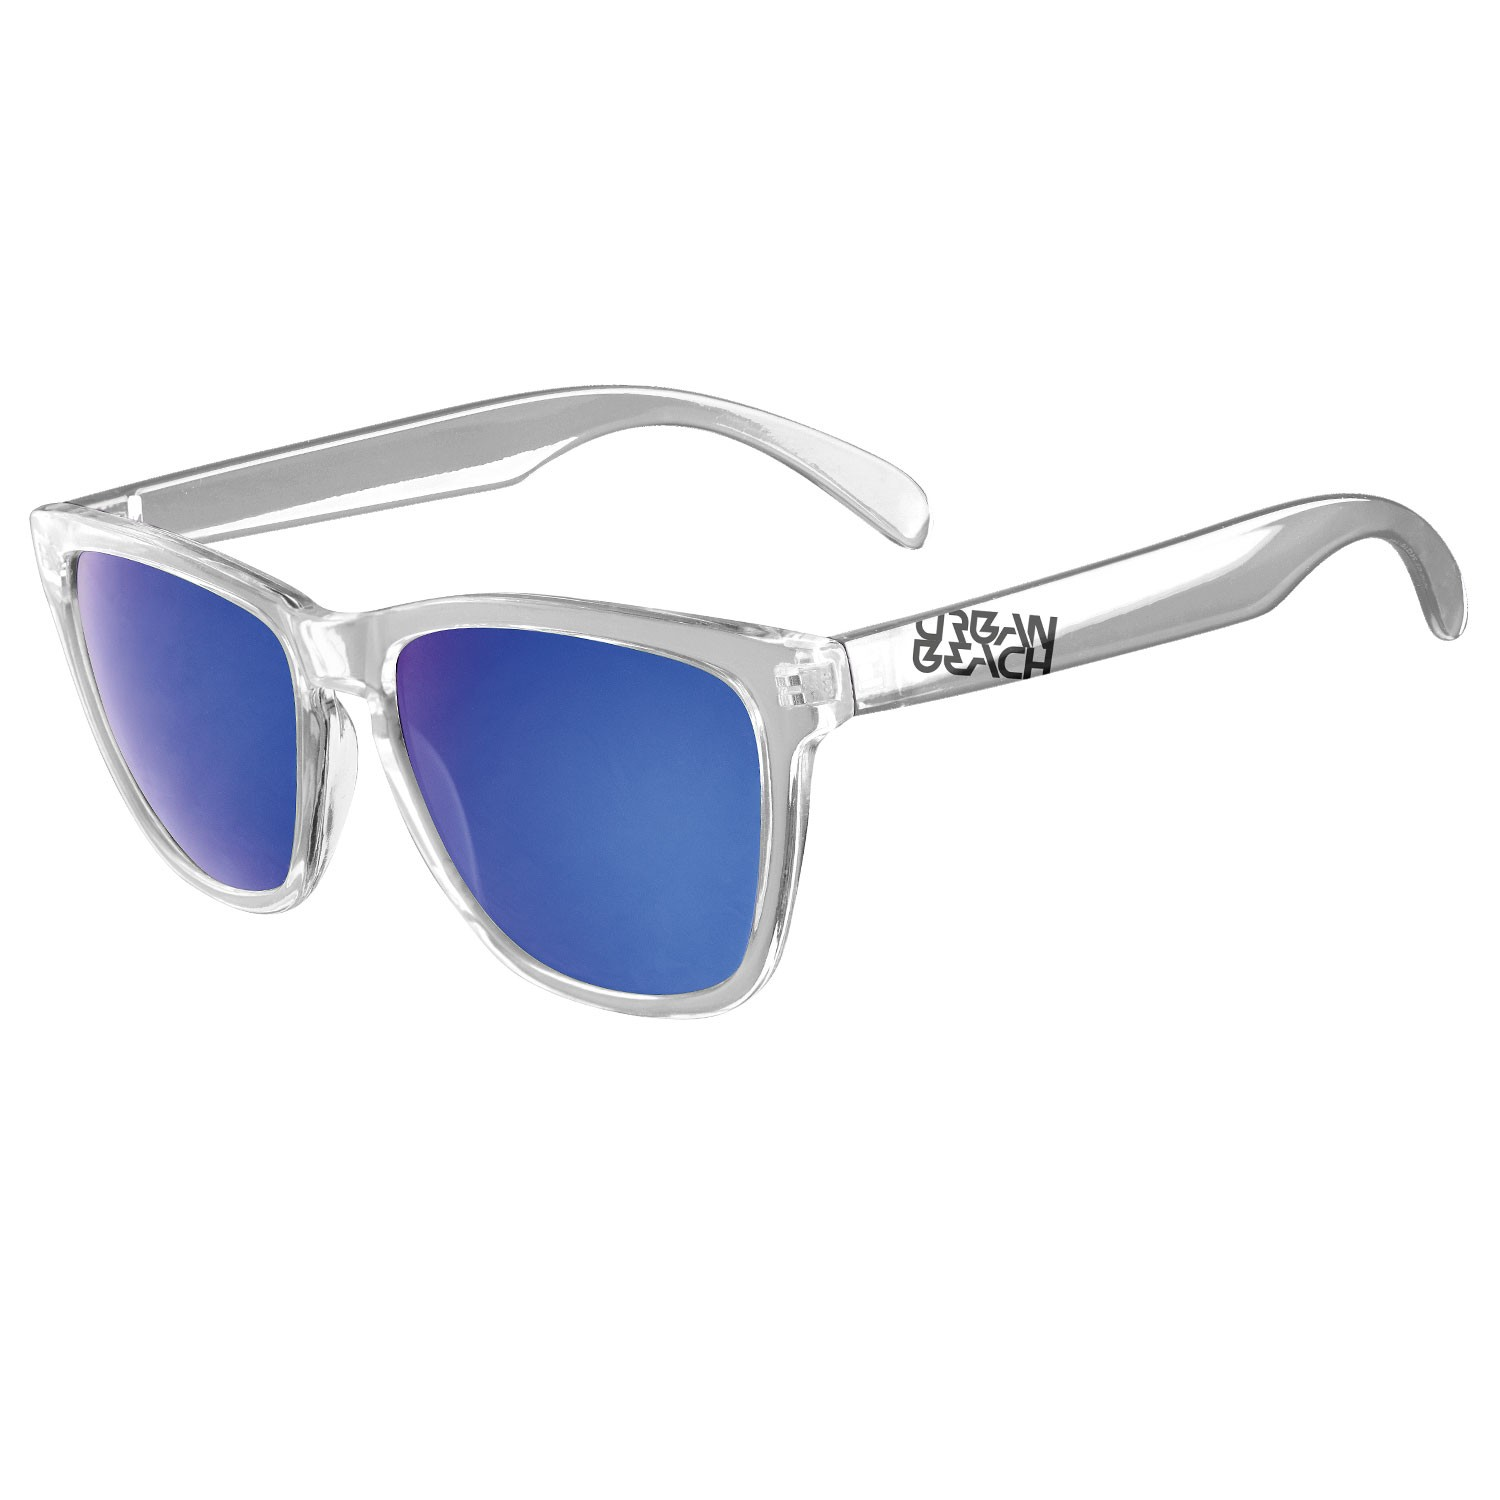 e28d4b0595 Unisex Polarised Clear Frame Sunglasses Piper- Free Delivery Over £20 -  Urban Beach